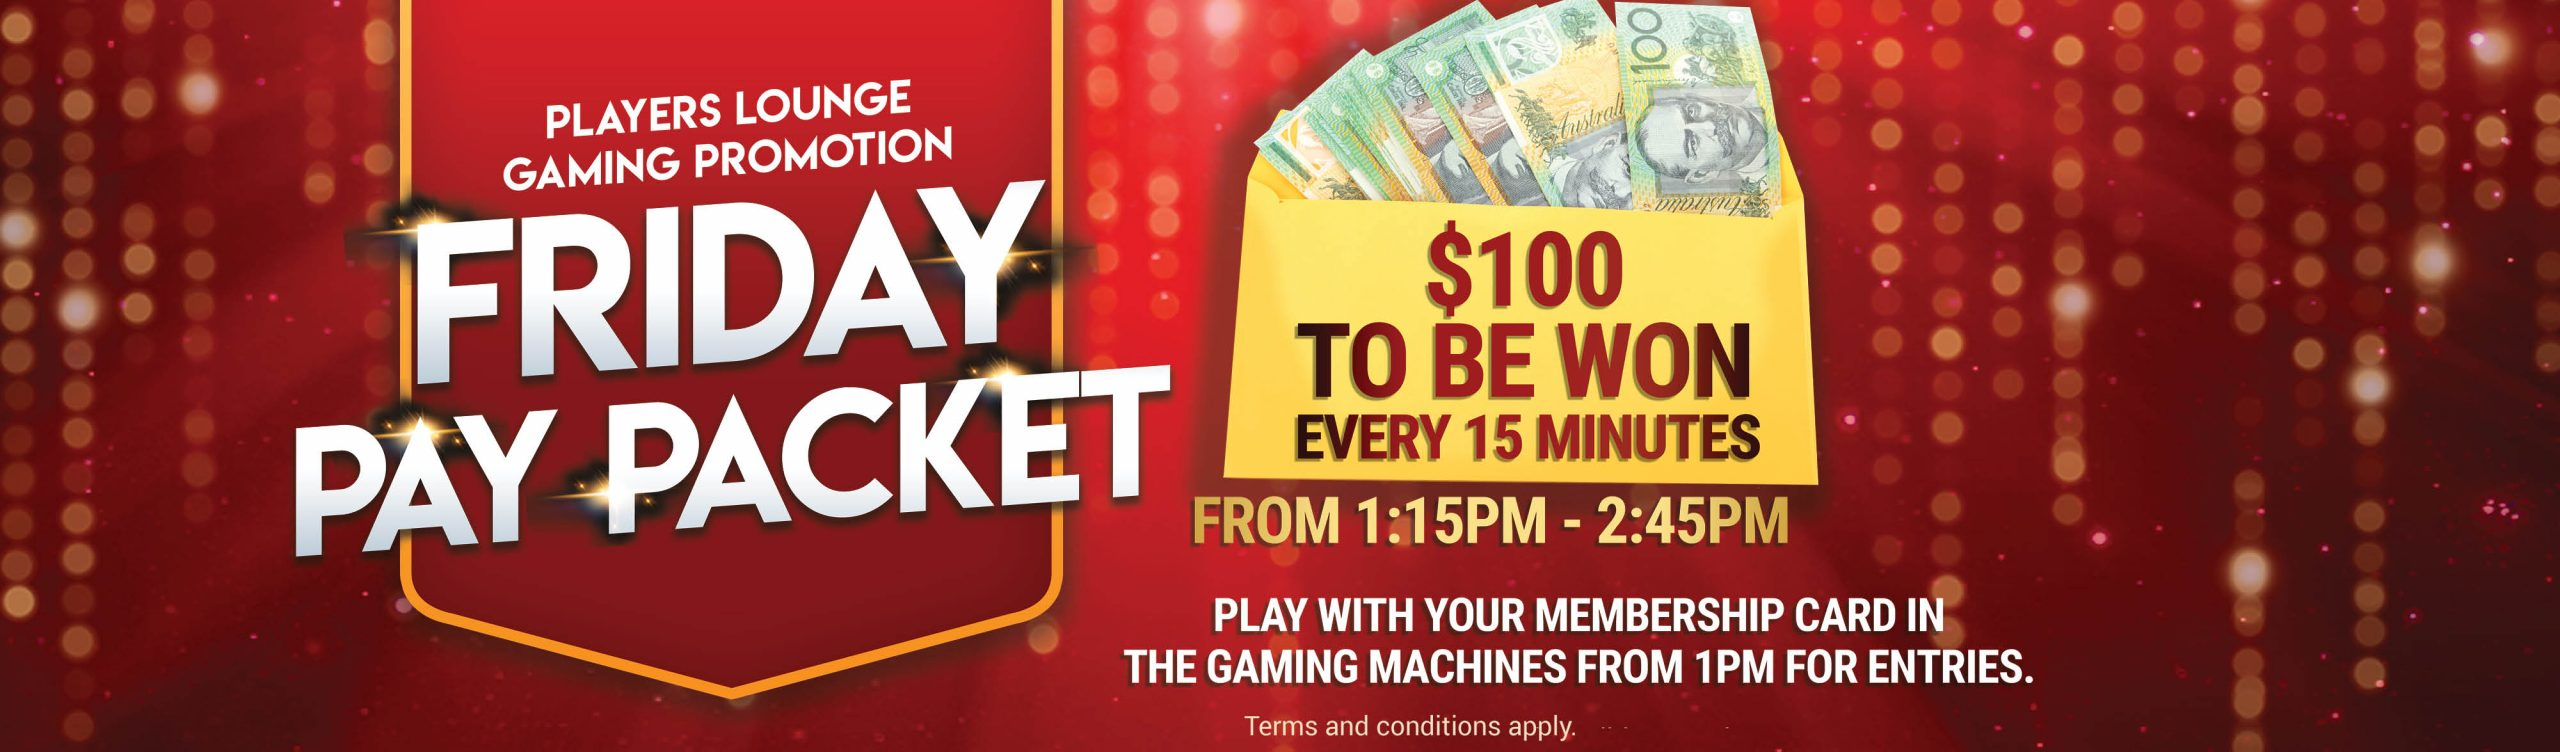 Friday Pay Packet Gaming Promotion